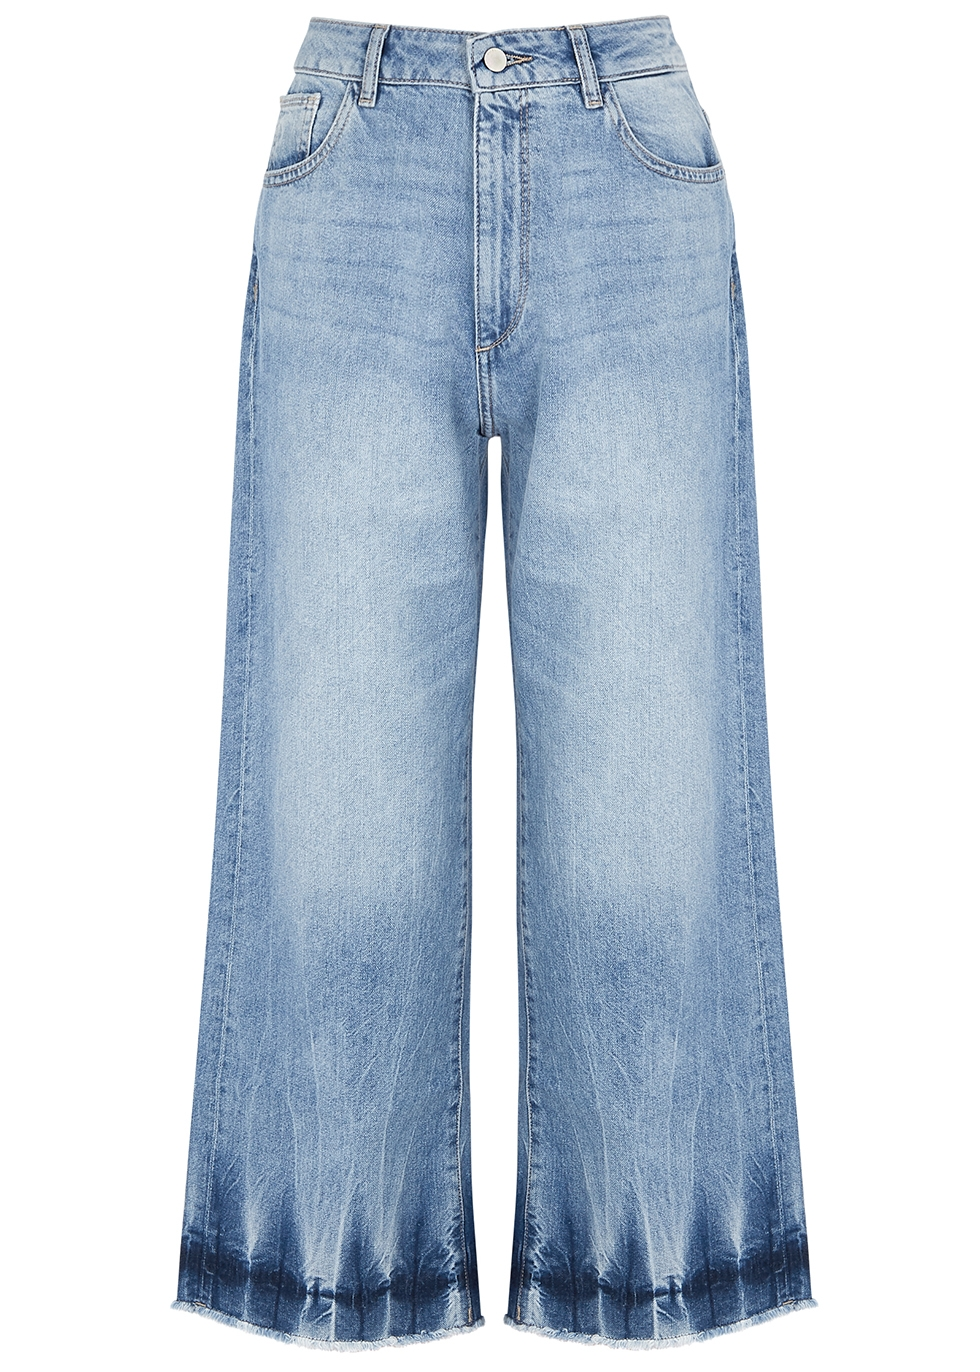 DL | DL1961 Hepburn Blue Wide-Leg Denim Jeans | Goxip